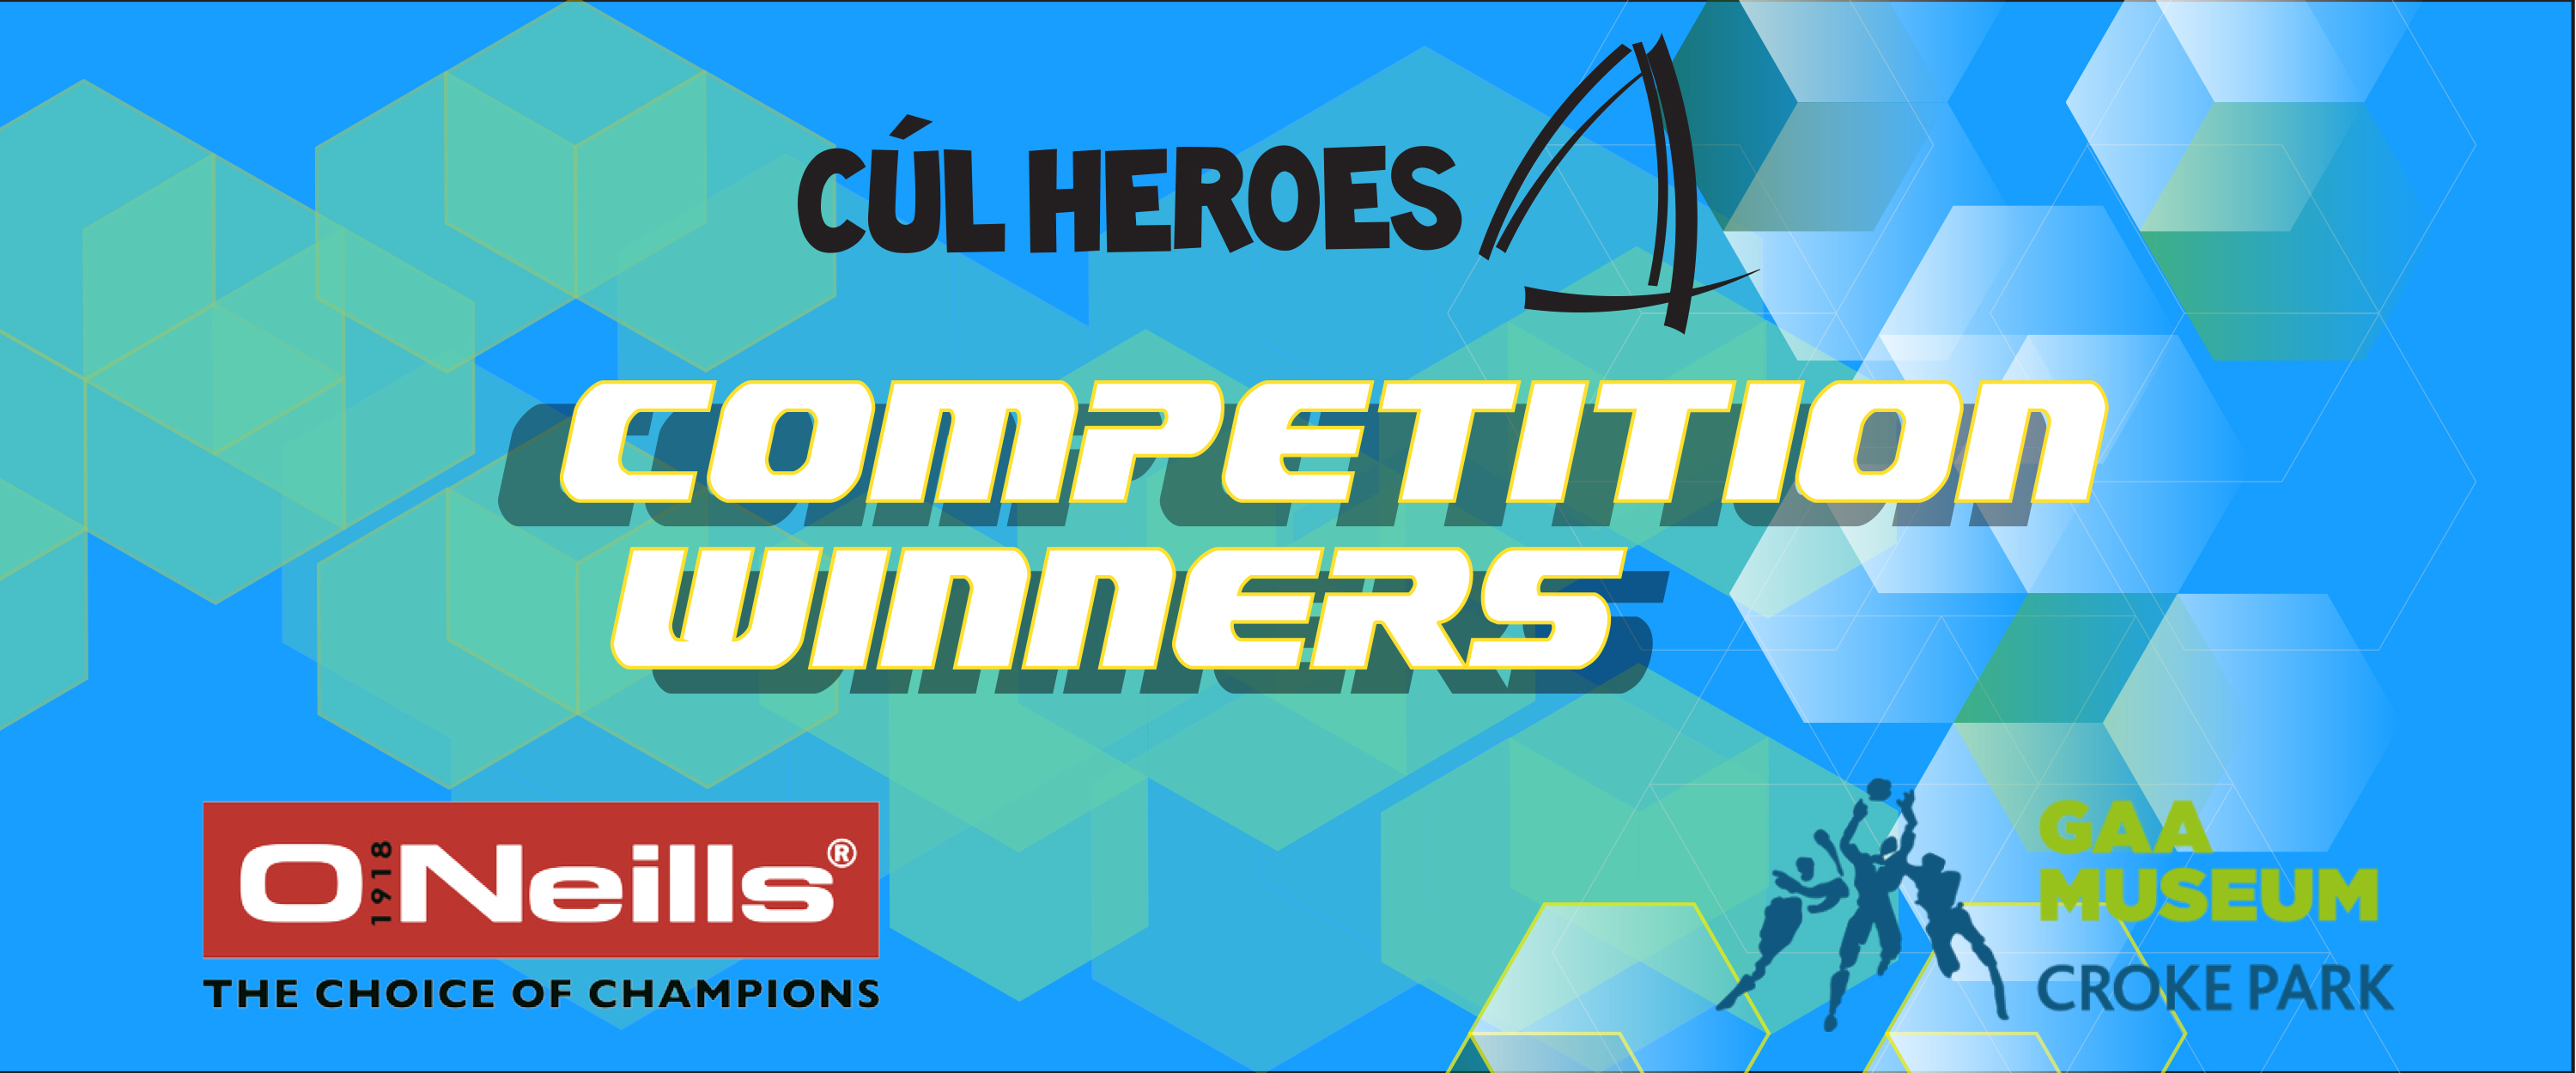 Enter your code competition winners – September 2016